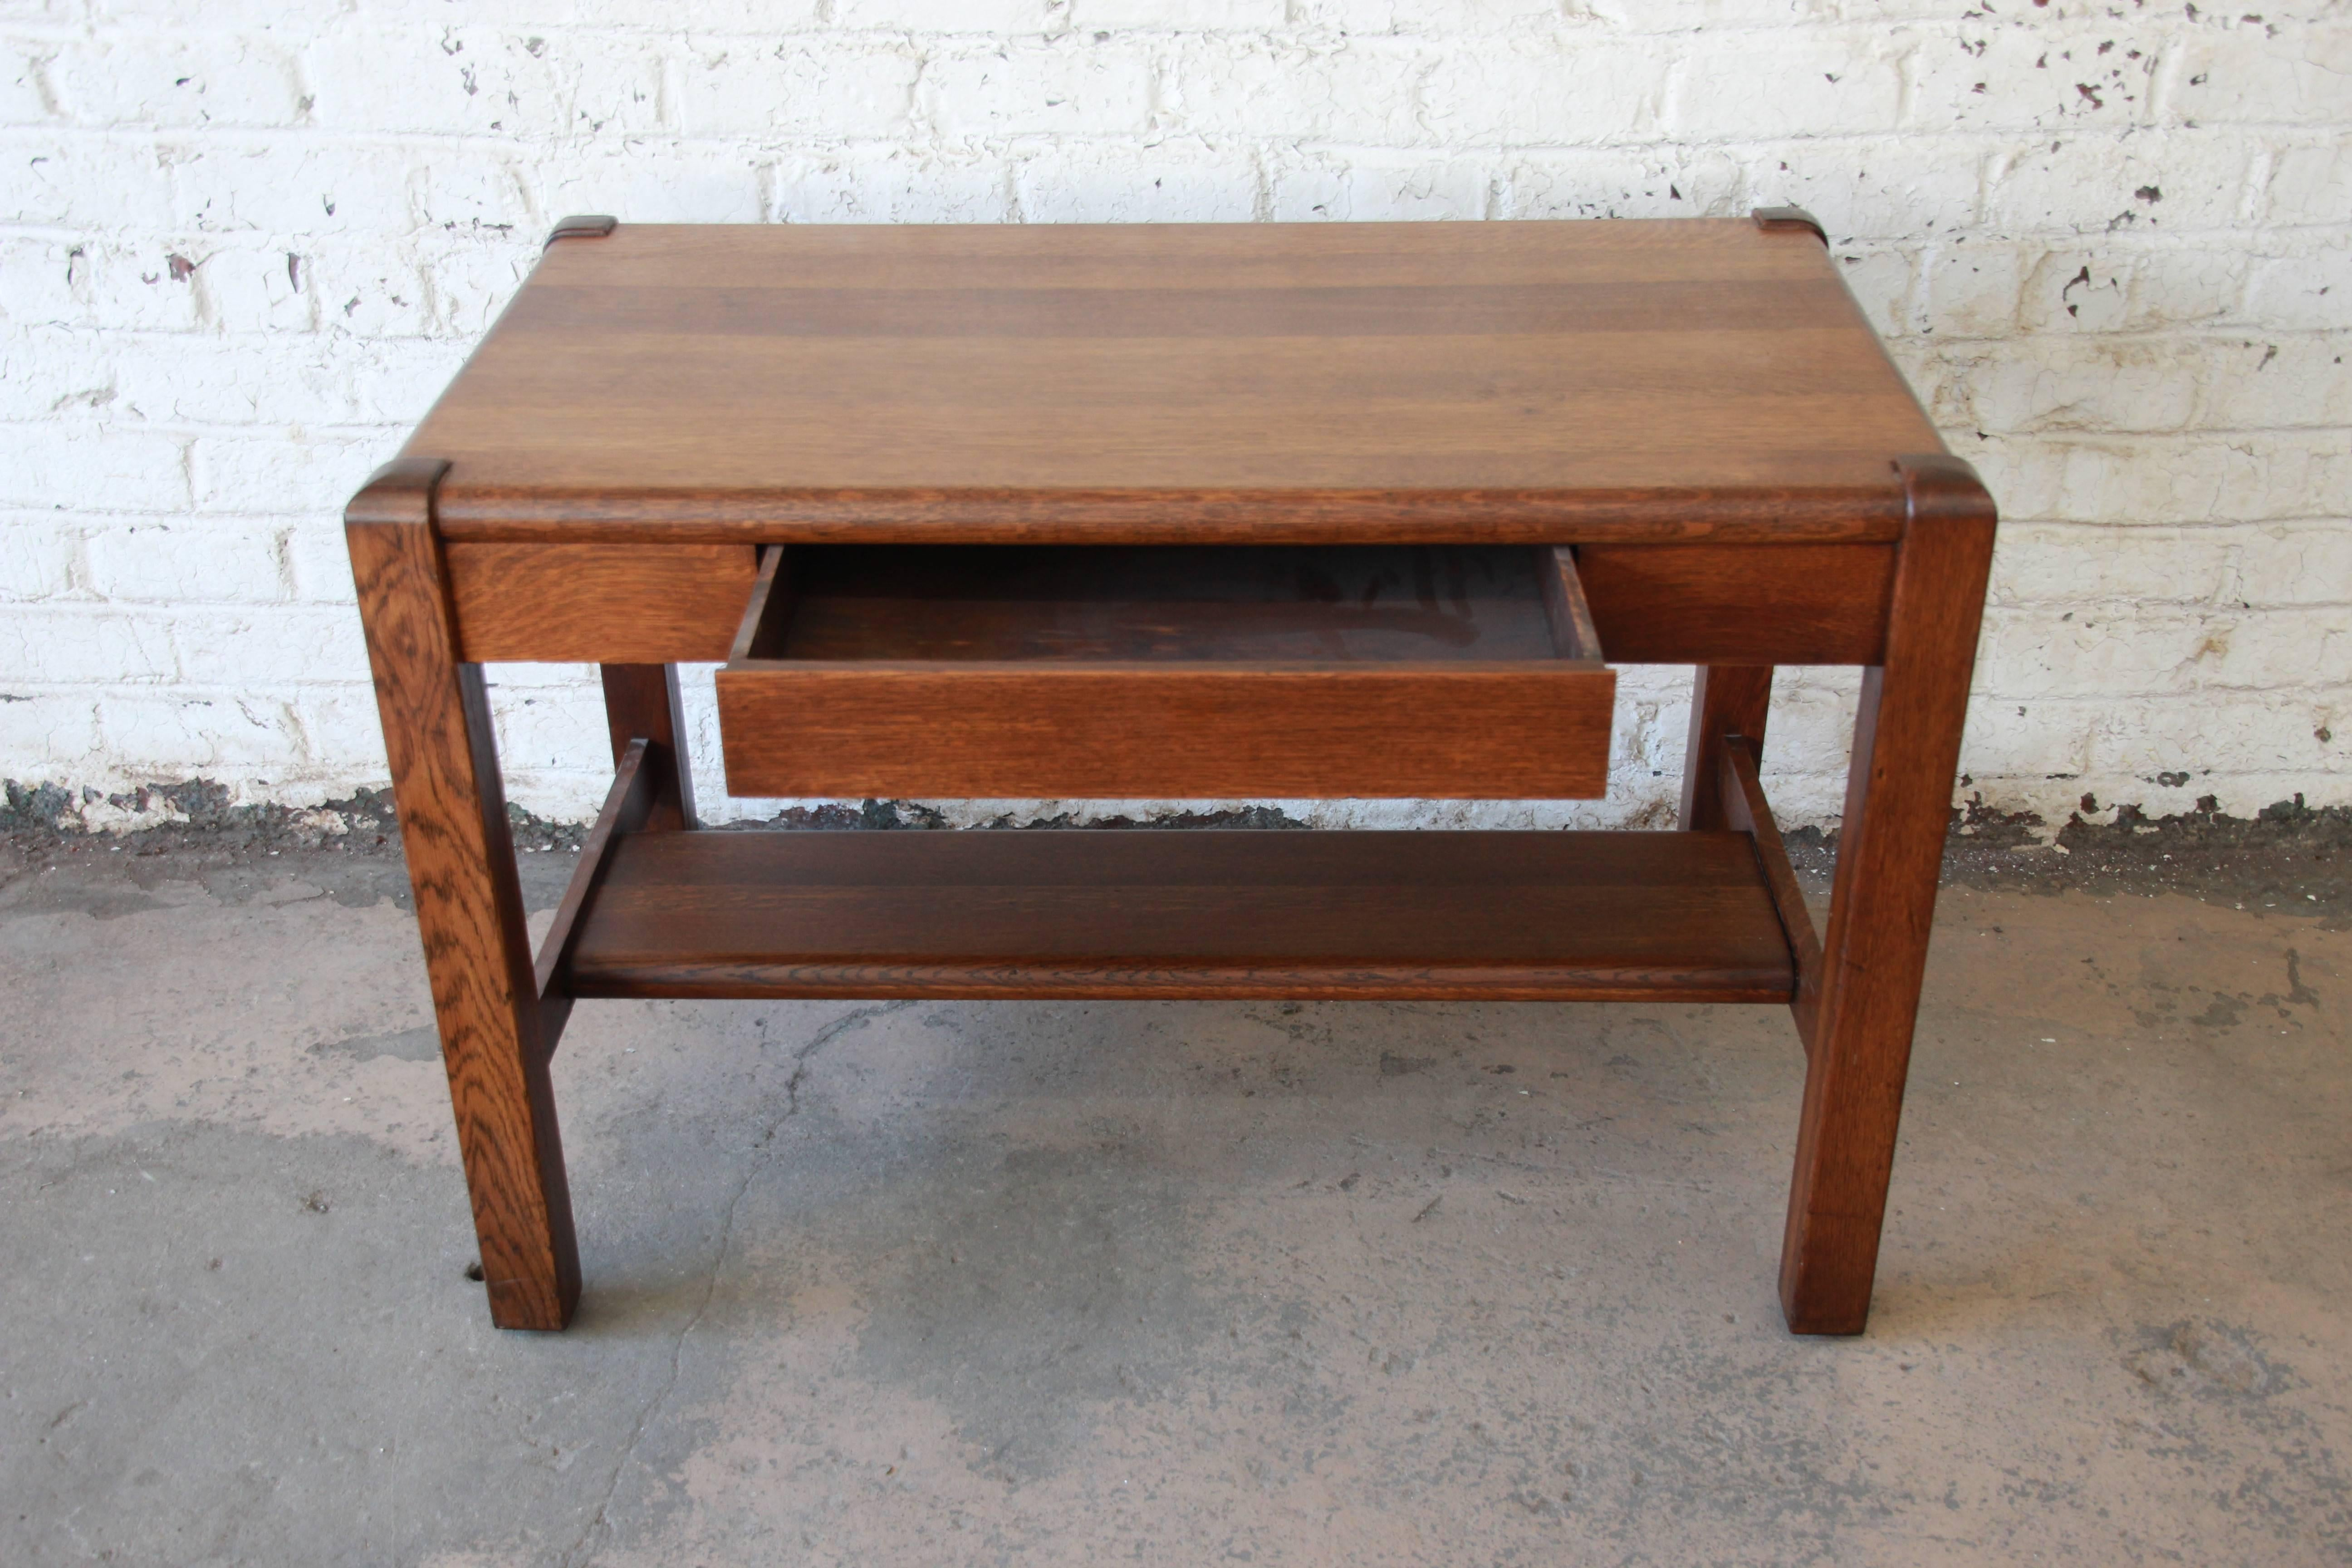 Antique American Arts And Crafts Period Mission Oak Desk Circa 1900 At 1stdibs